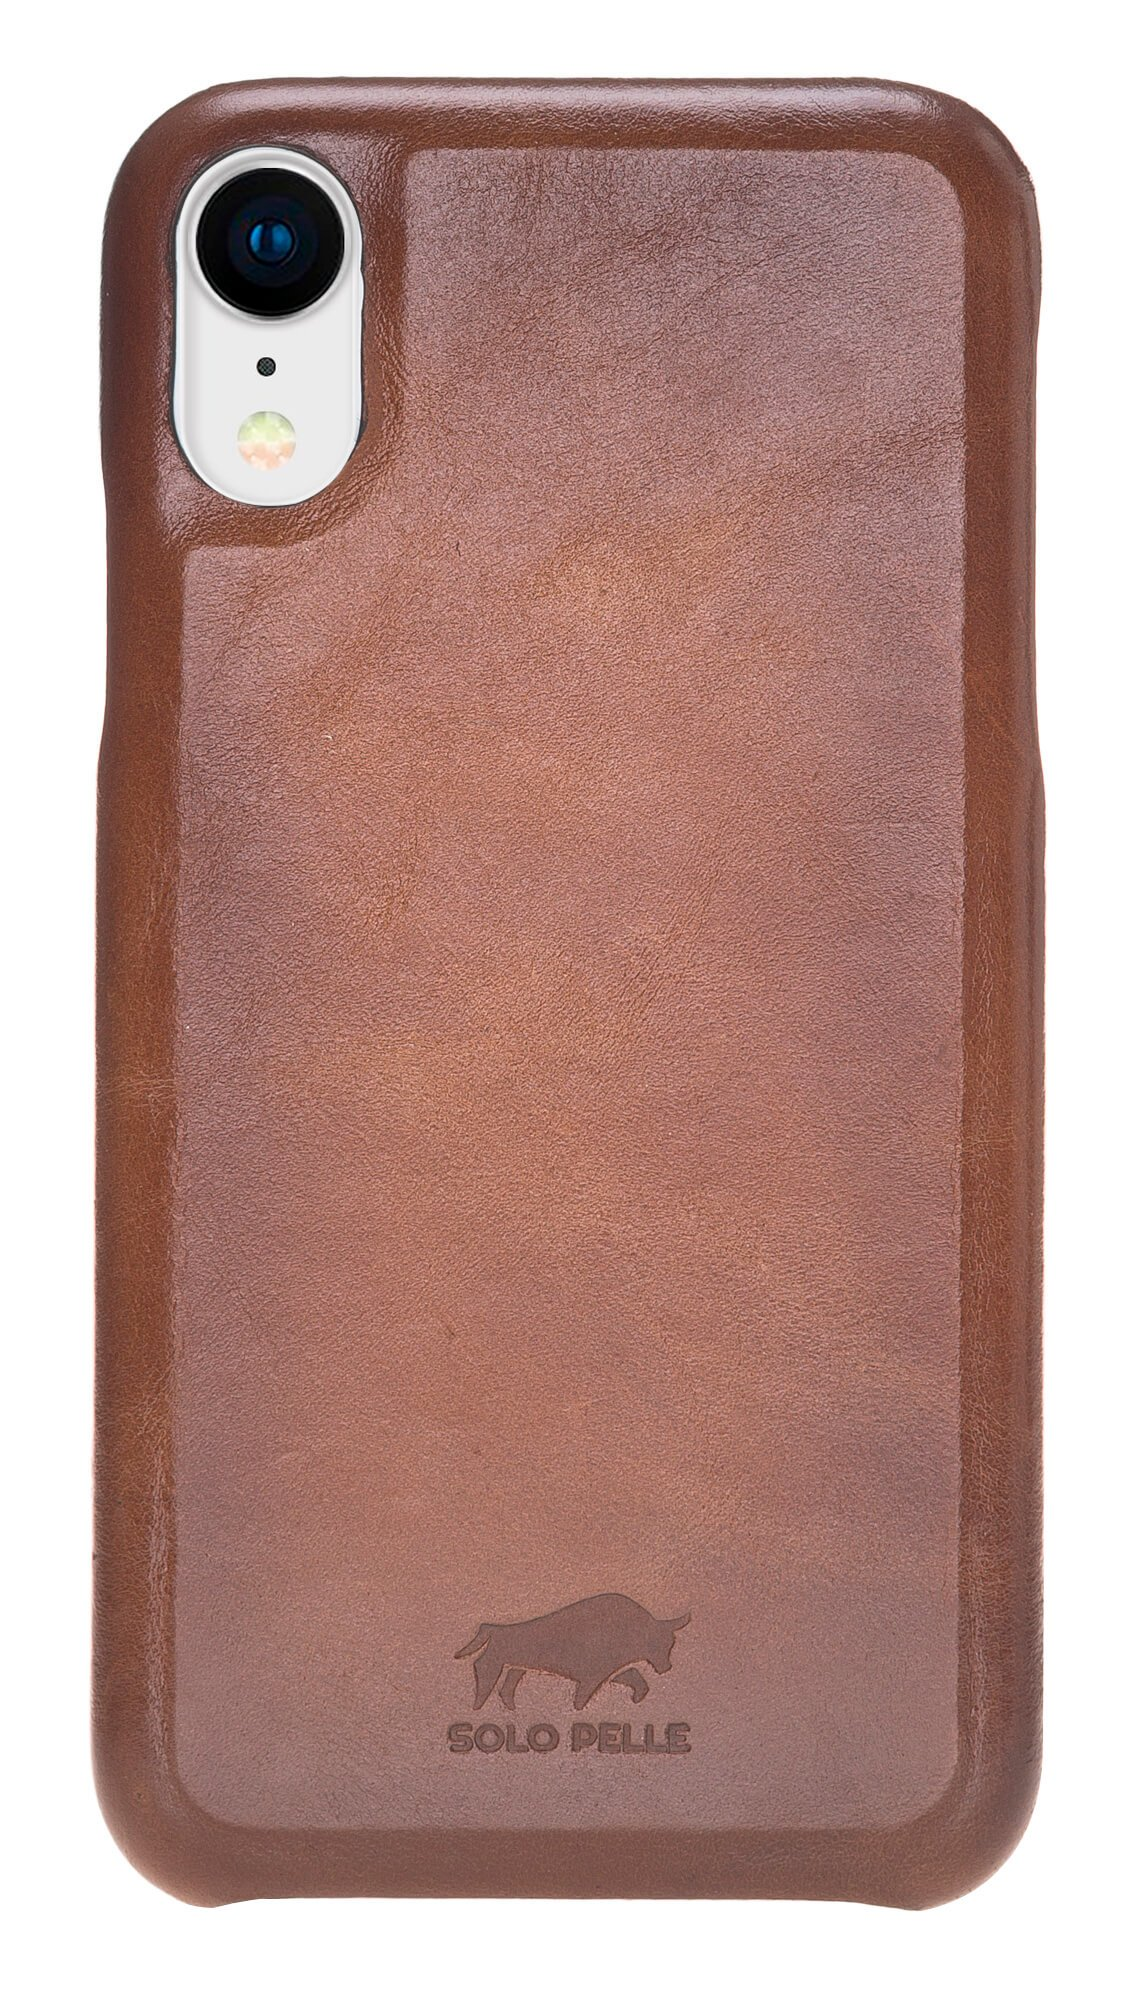 iPhone XR Lederhülle - F360 Fullcover - in Cognac Braun Burned